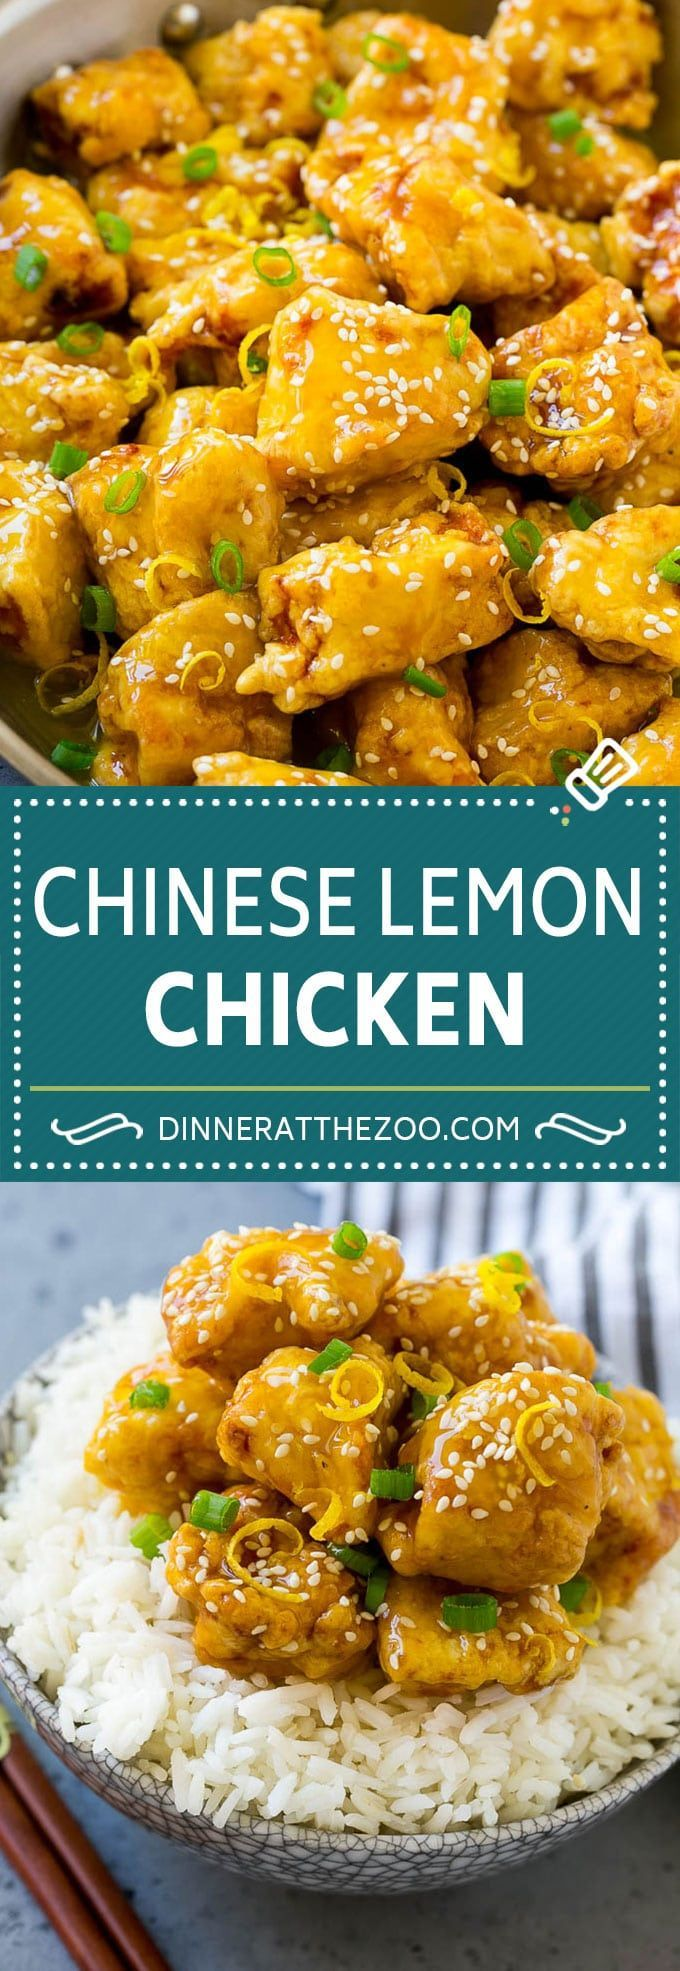 Photo of Chinese Lemon Chicken Recipe | Crispy Lemon Chicken | Chinese Food Recipe #lemon…